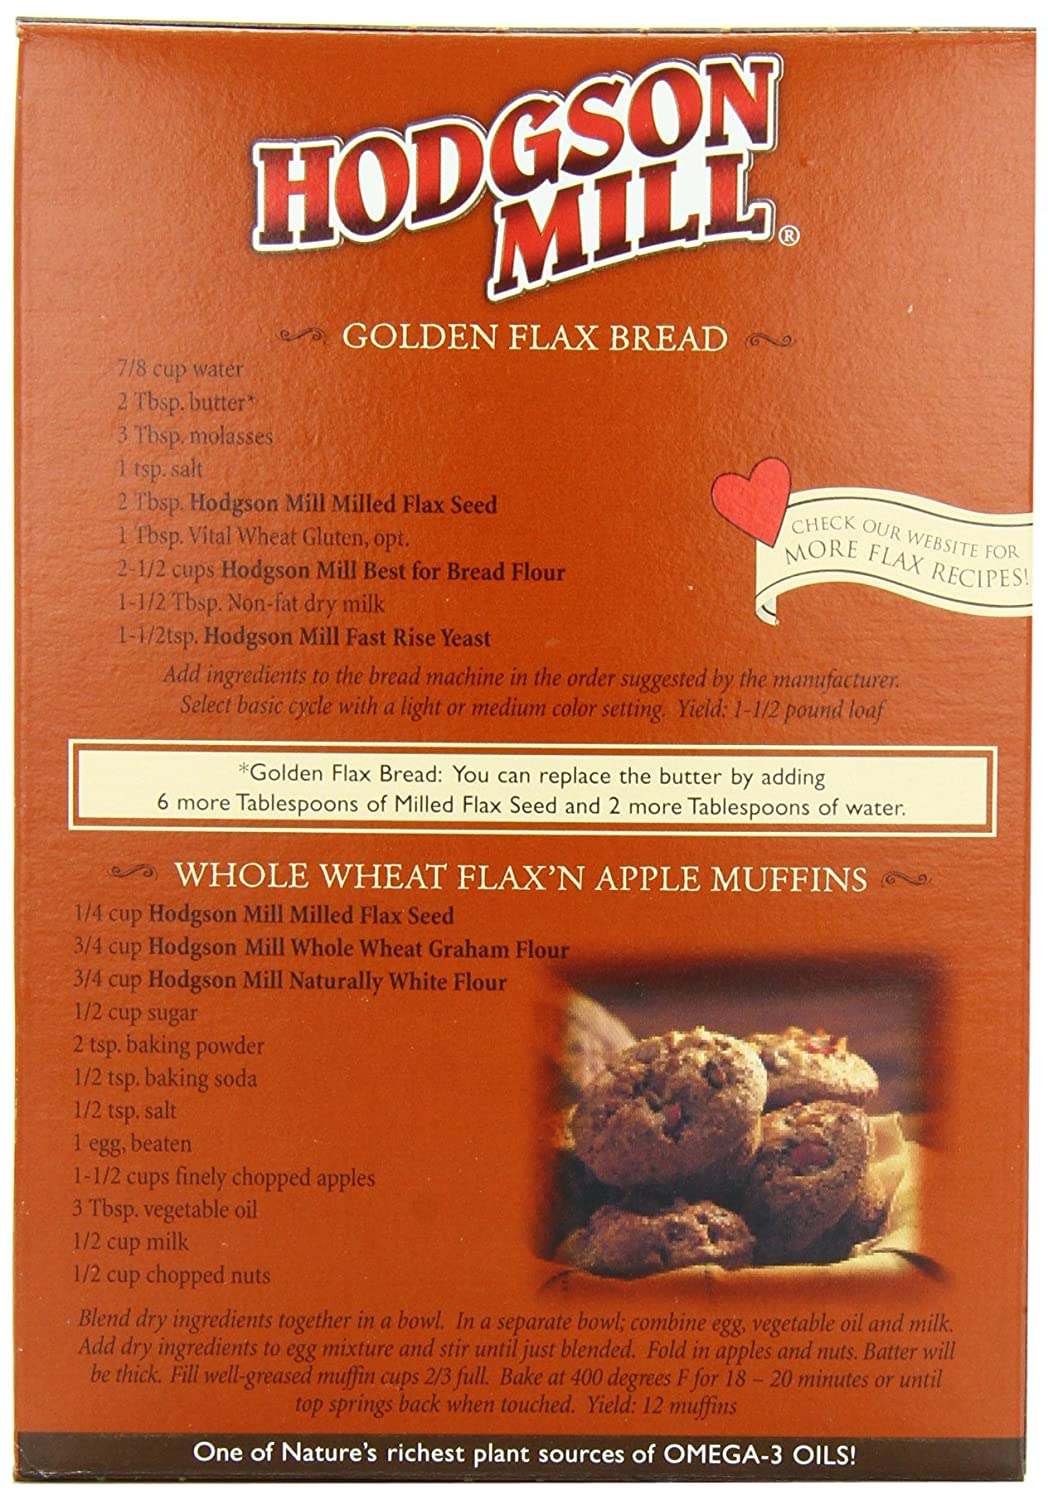 Bulk flax seed for crafts - Amazon Com Hodgson Mill Milled Flax Seed 12 Ounce Boxes Pack Of 8 Cooking And Baking Seeds And Nuts Grocery Gourmet Food